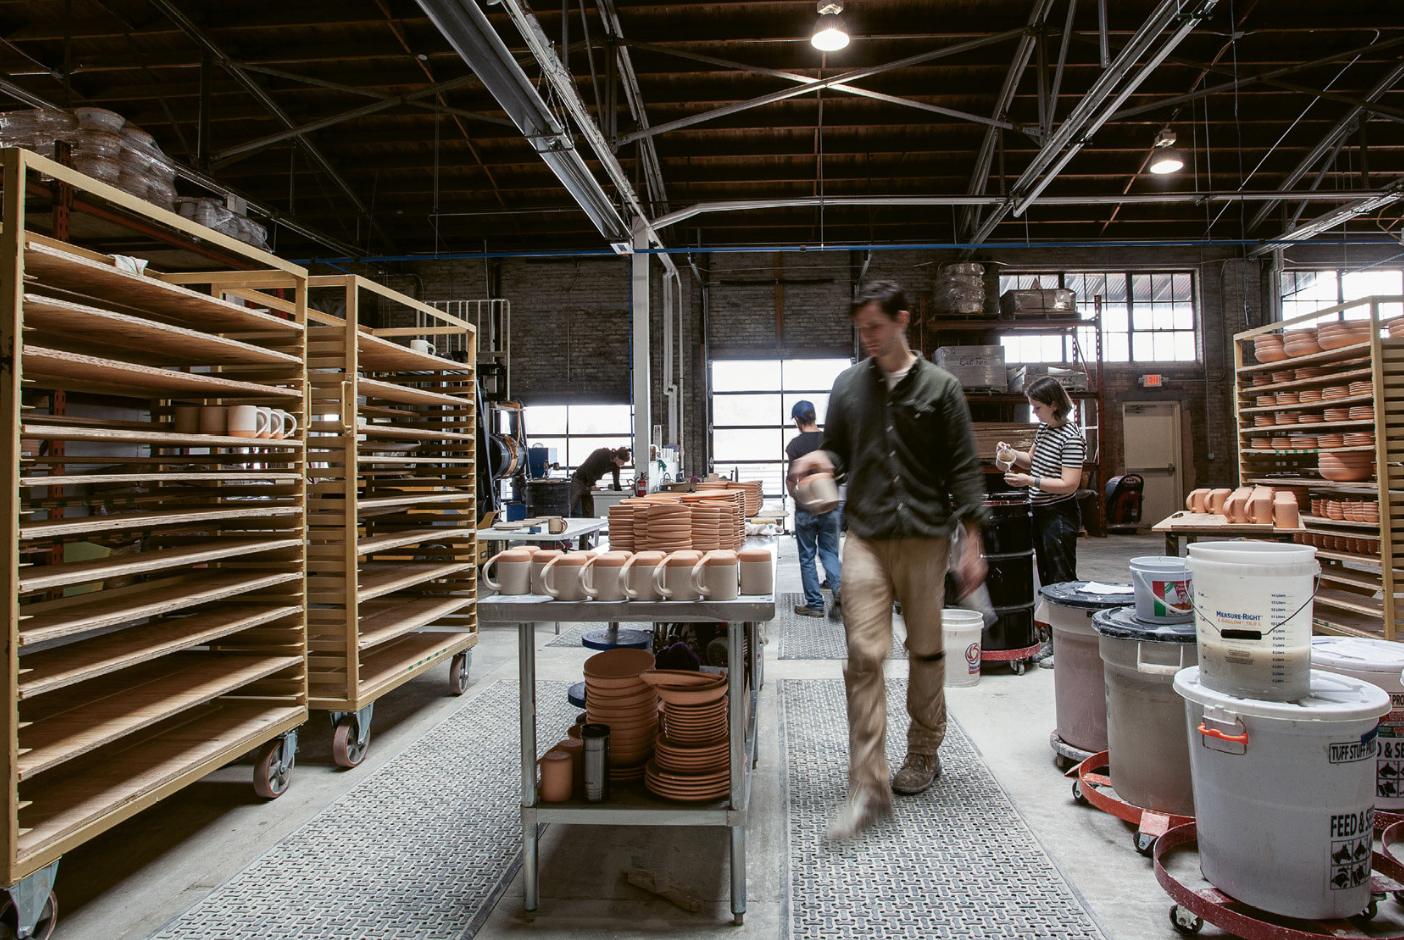 The team at East Fork in Asheville making things happen in their open workspace. Article by Paul Clark. Photography by Jennifer Cole.